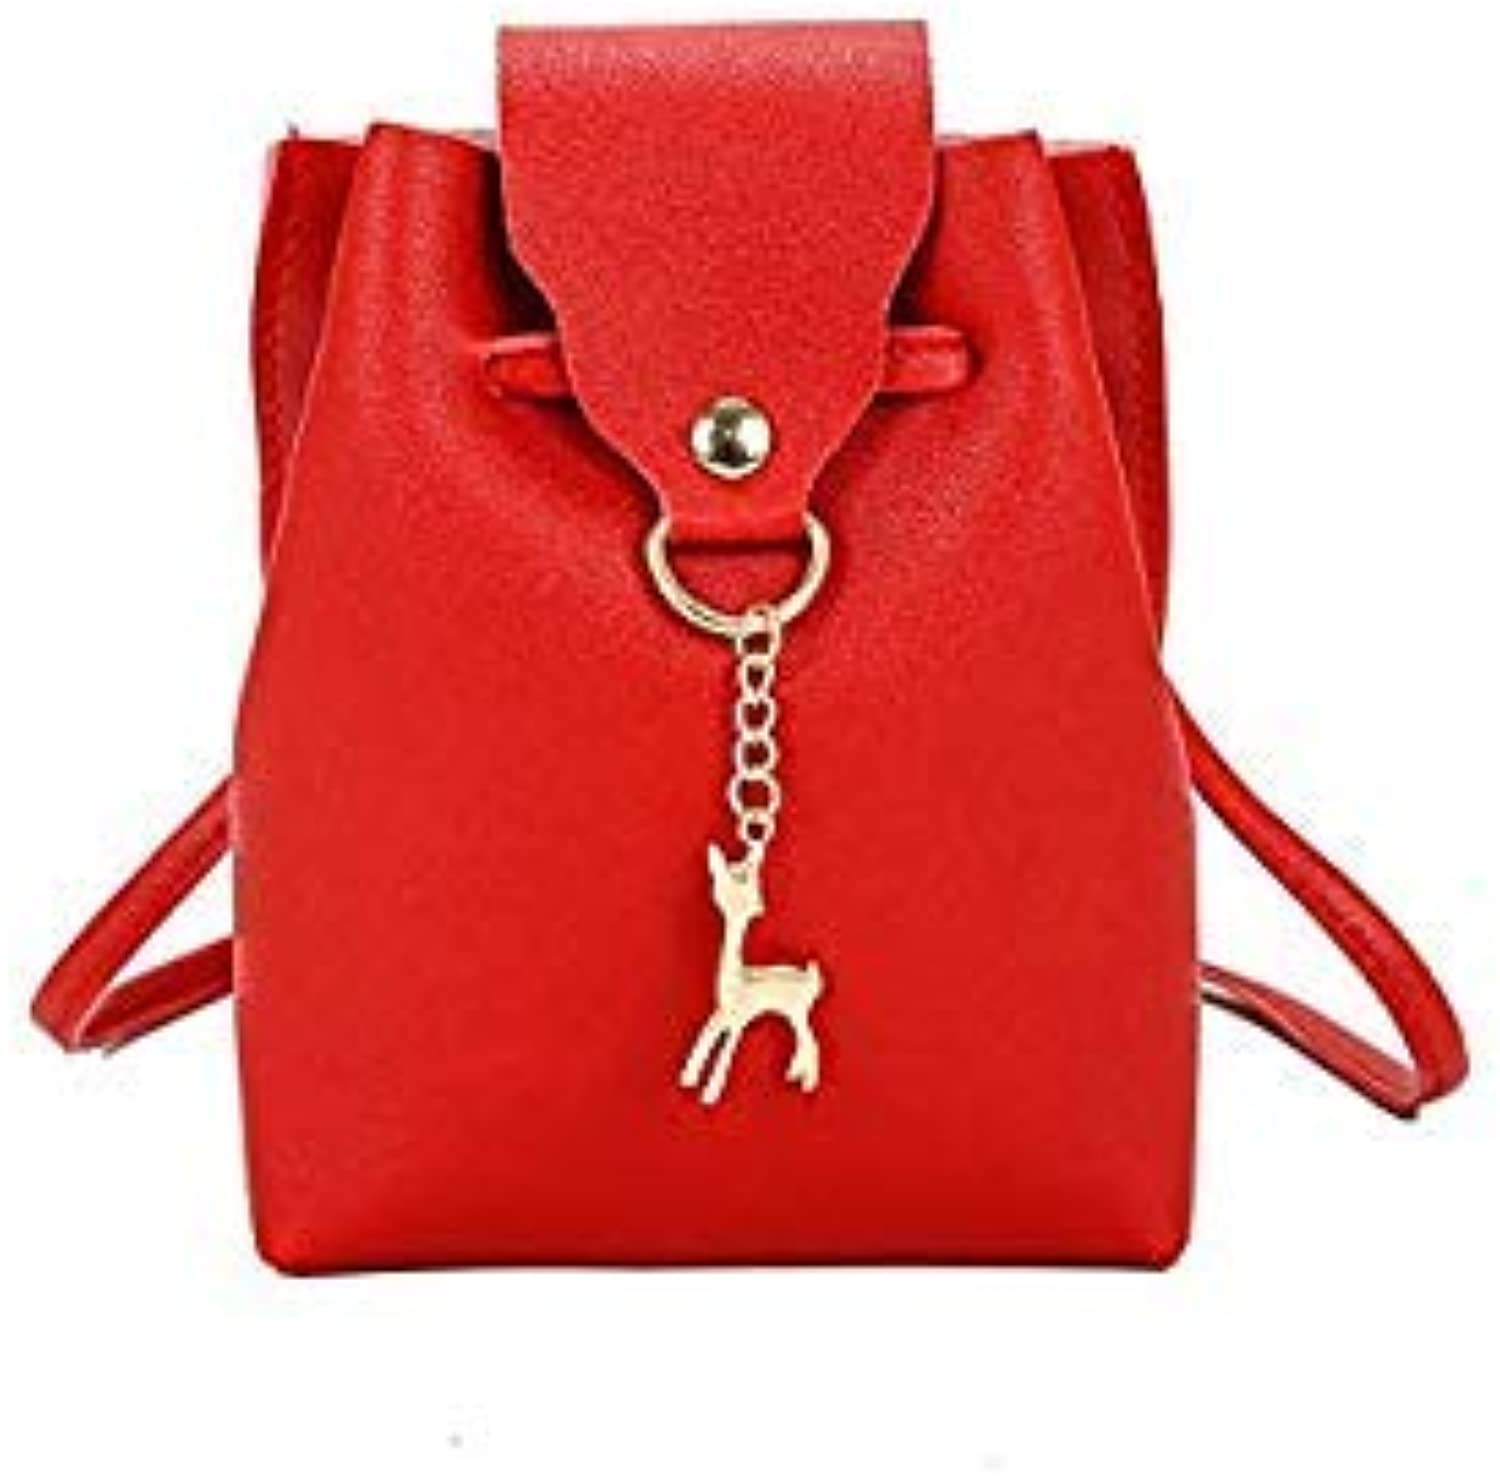 Bloomerang New Women Small Tote Messenger Bags Pure color Shoulder Bags Female Lady Leisure Street Handbags color Red